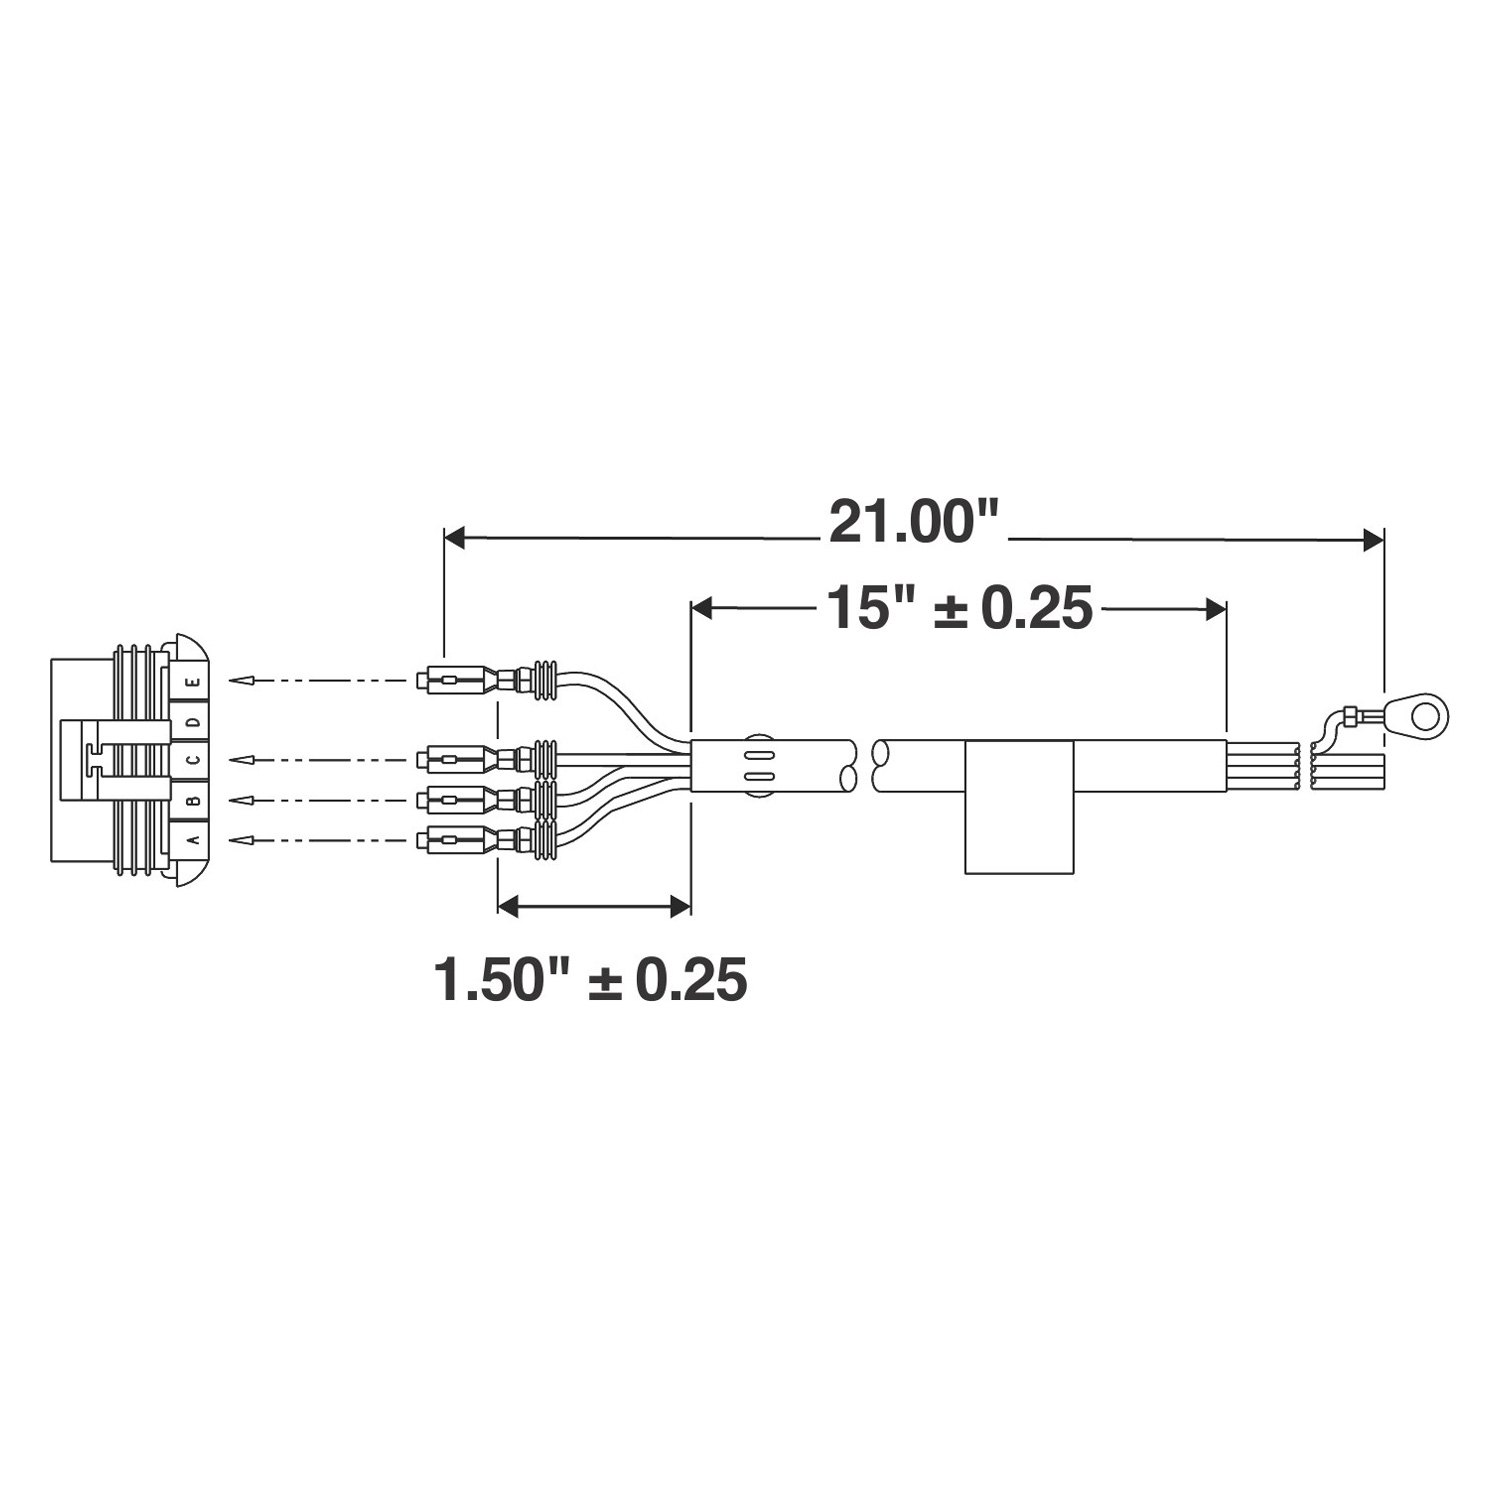 hight resolution of signal stat wiring diagram images gallery